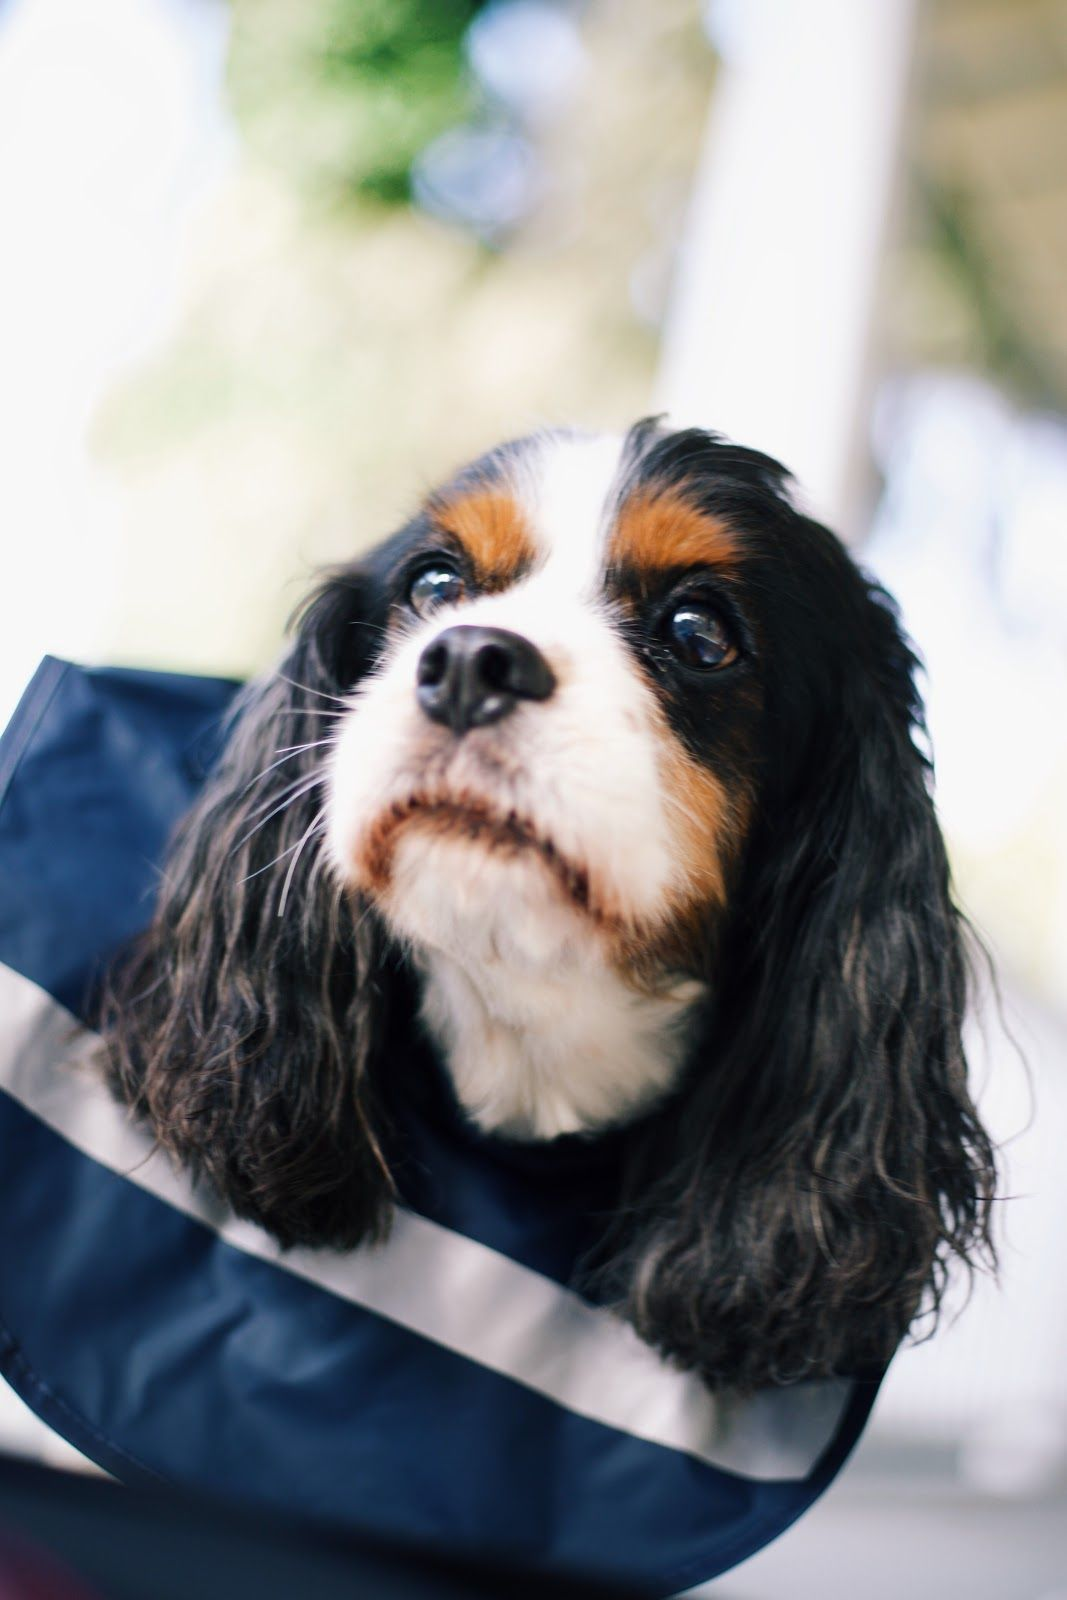 Happy Friday from one of favorite furry friends modeling the Doggie New Englander! Available in XS-XL and featuring a back pocket to store their favorite treats for being such a good boy!